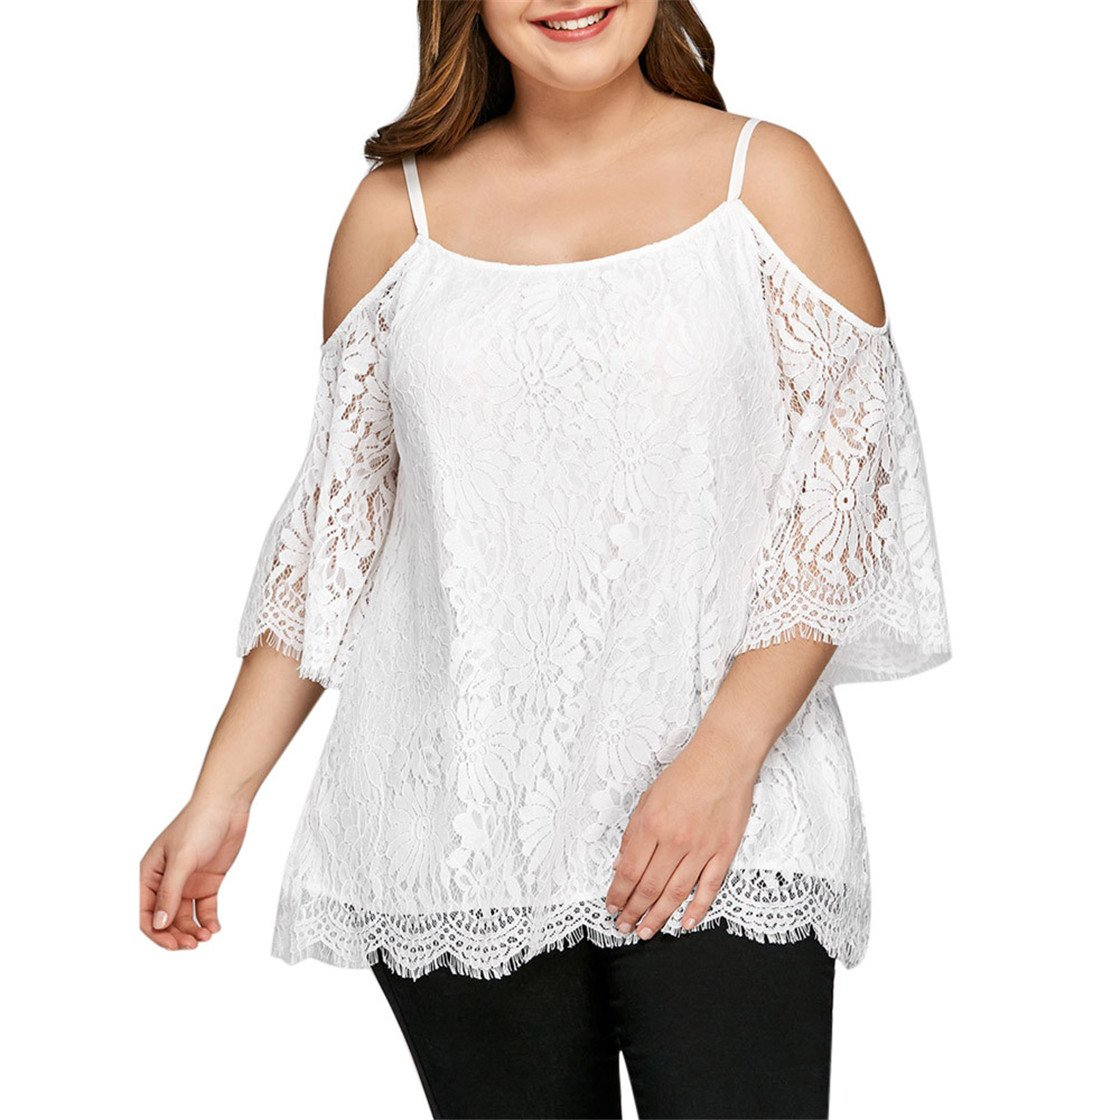 Mose Plus Size Womens T Shirts, Sexy Women Cutout Lace Cold Shoulder Long Sleeve Sweatshirt Pullover Tops Camisole Blouse Fashion Shirts New (White, L5)